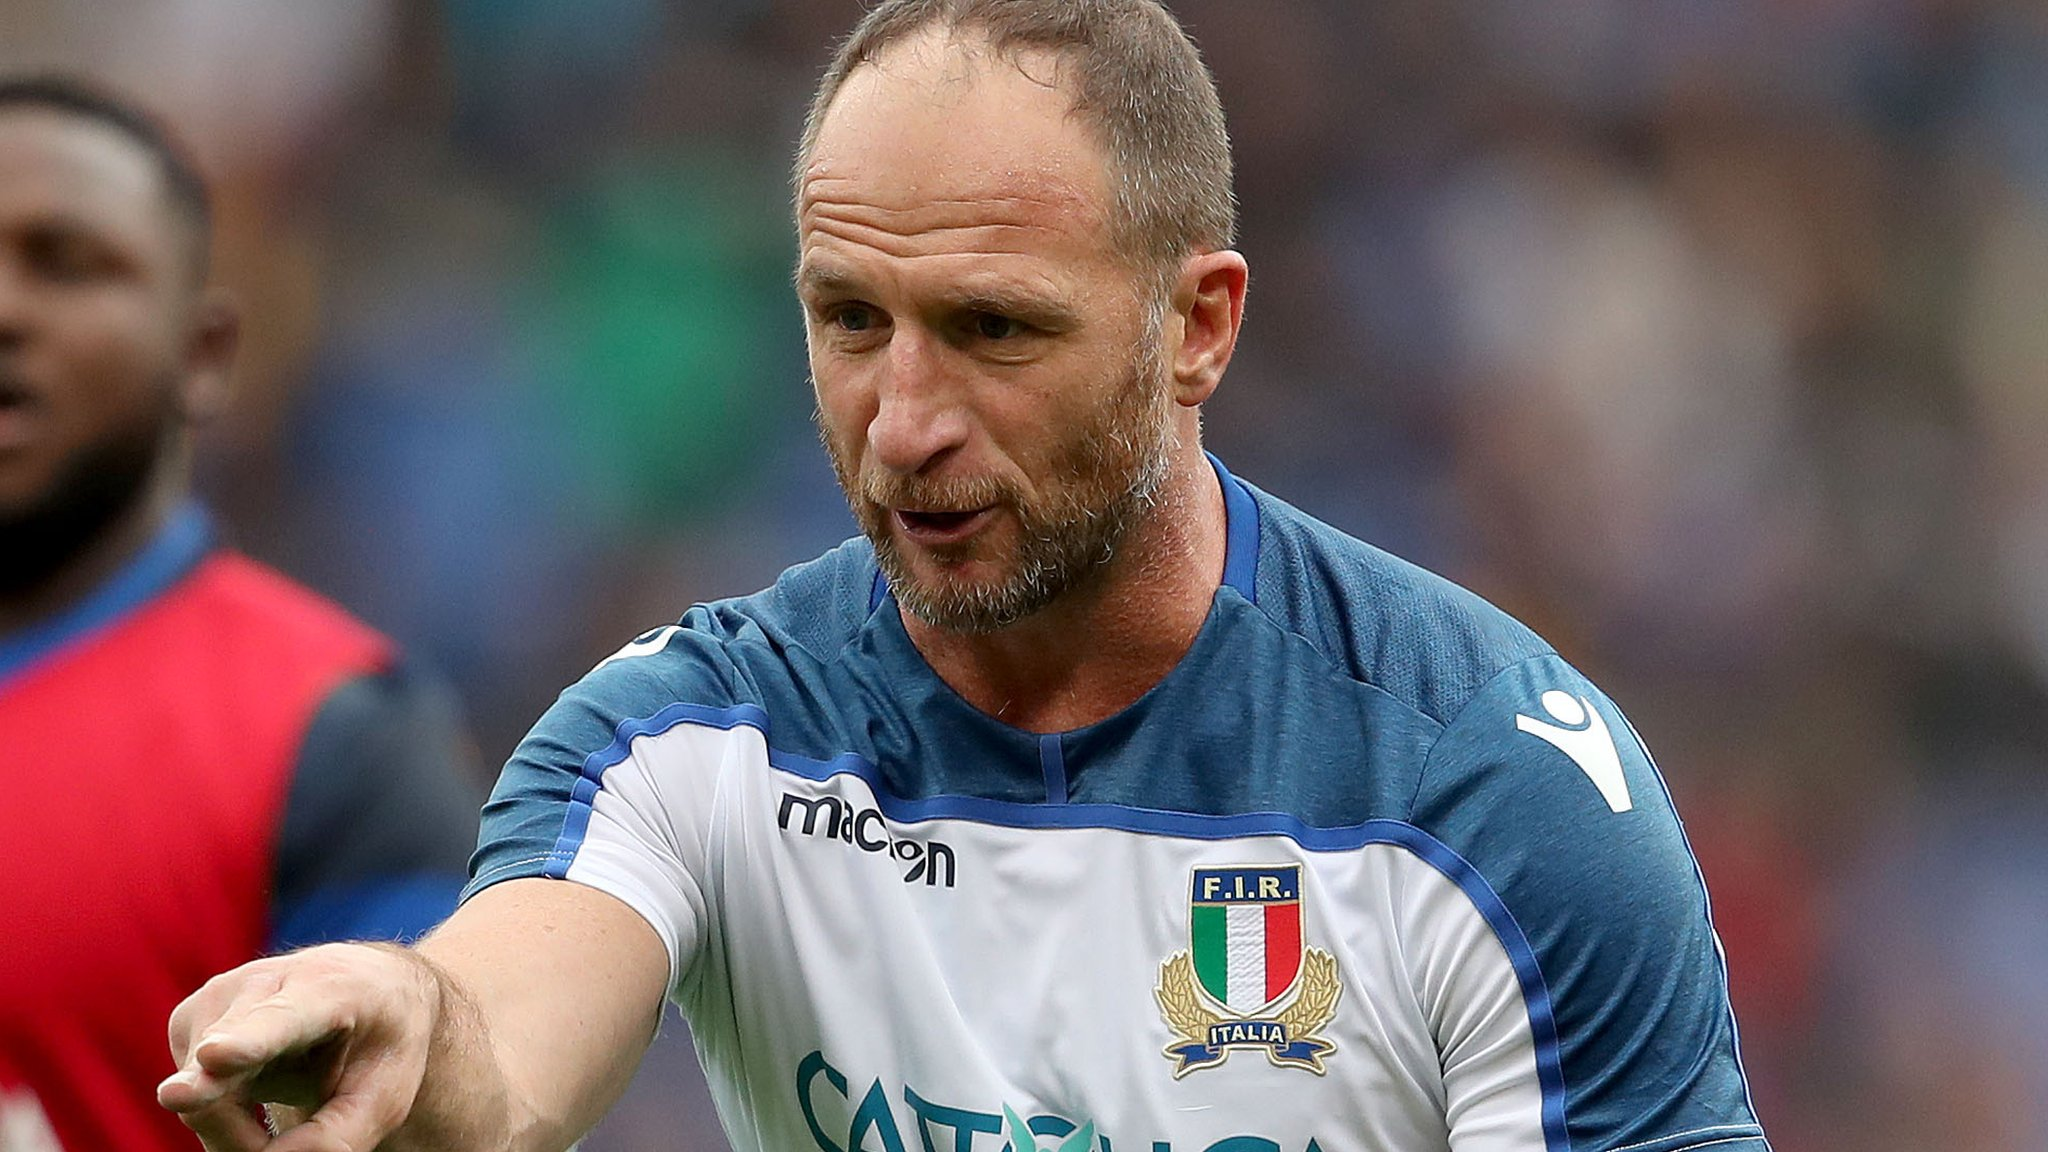 Mike Catt: Former England international agrees to join Ireland as assistant coach